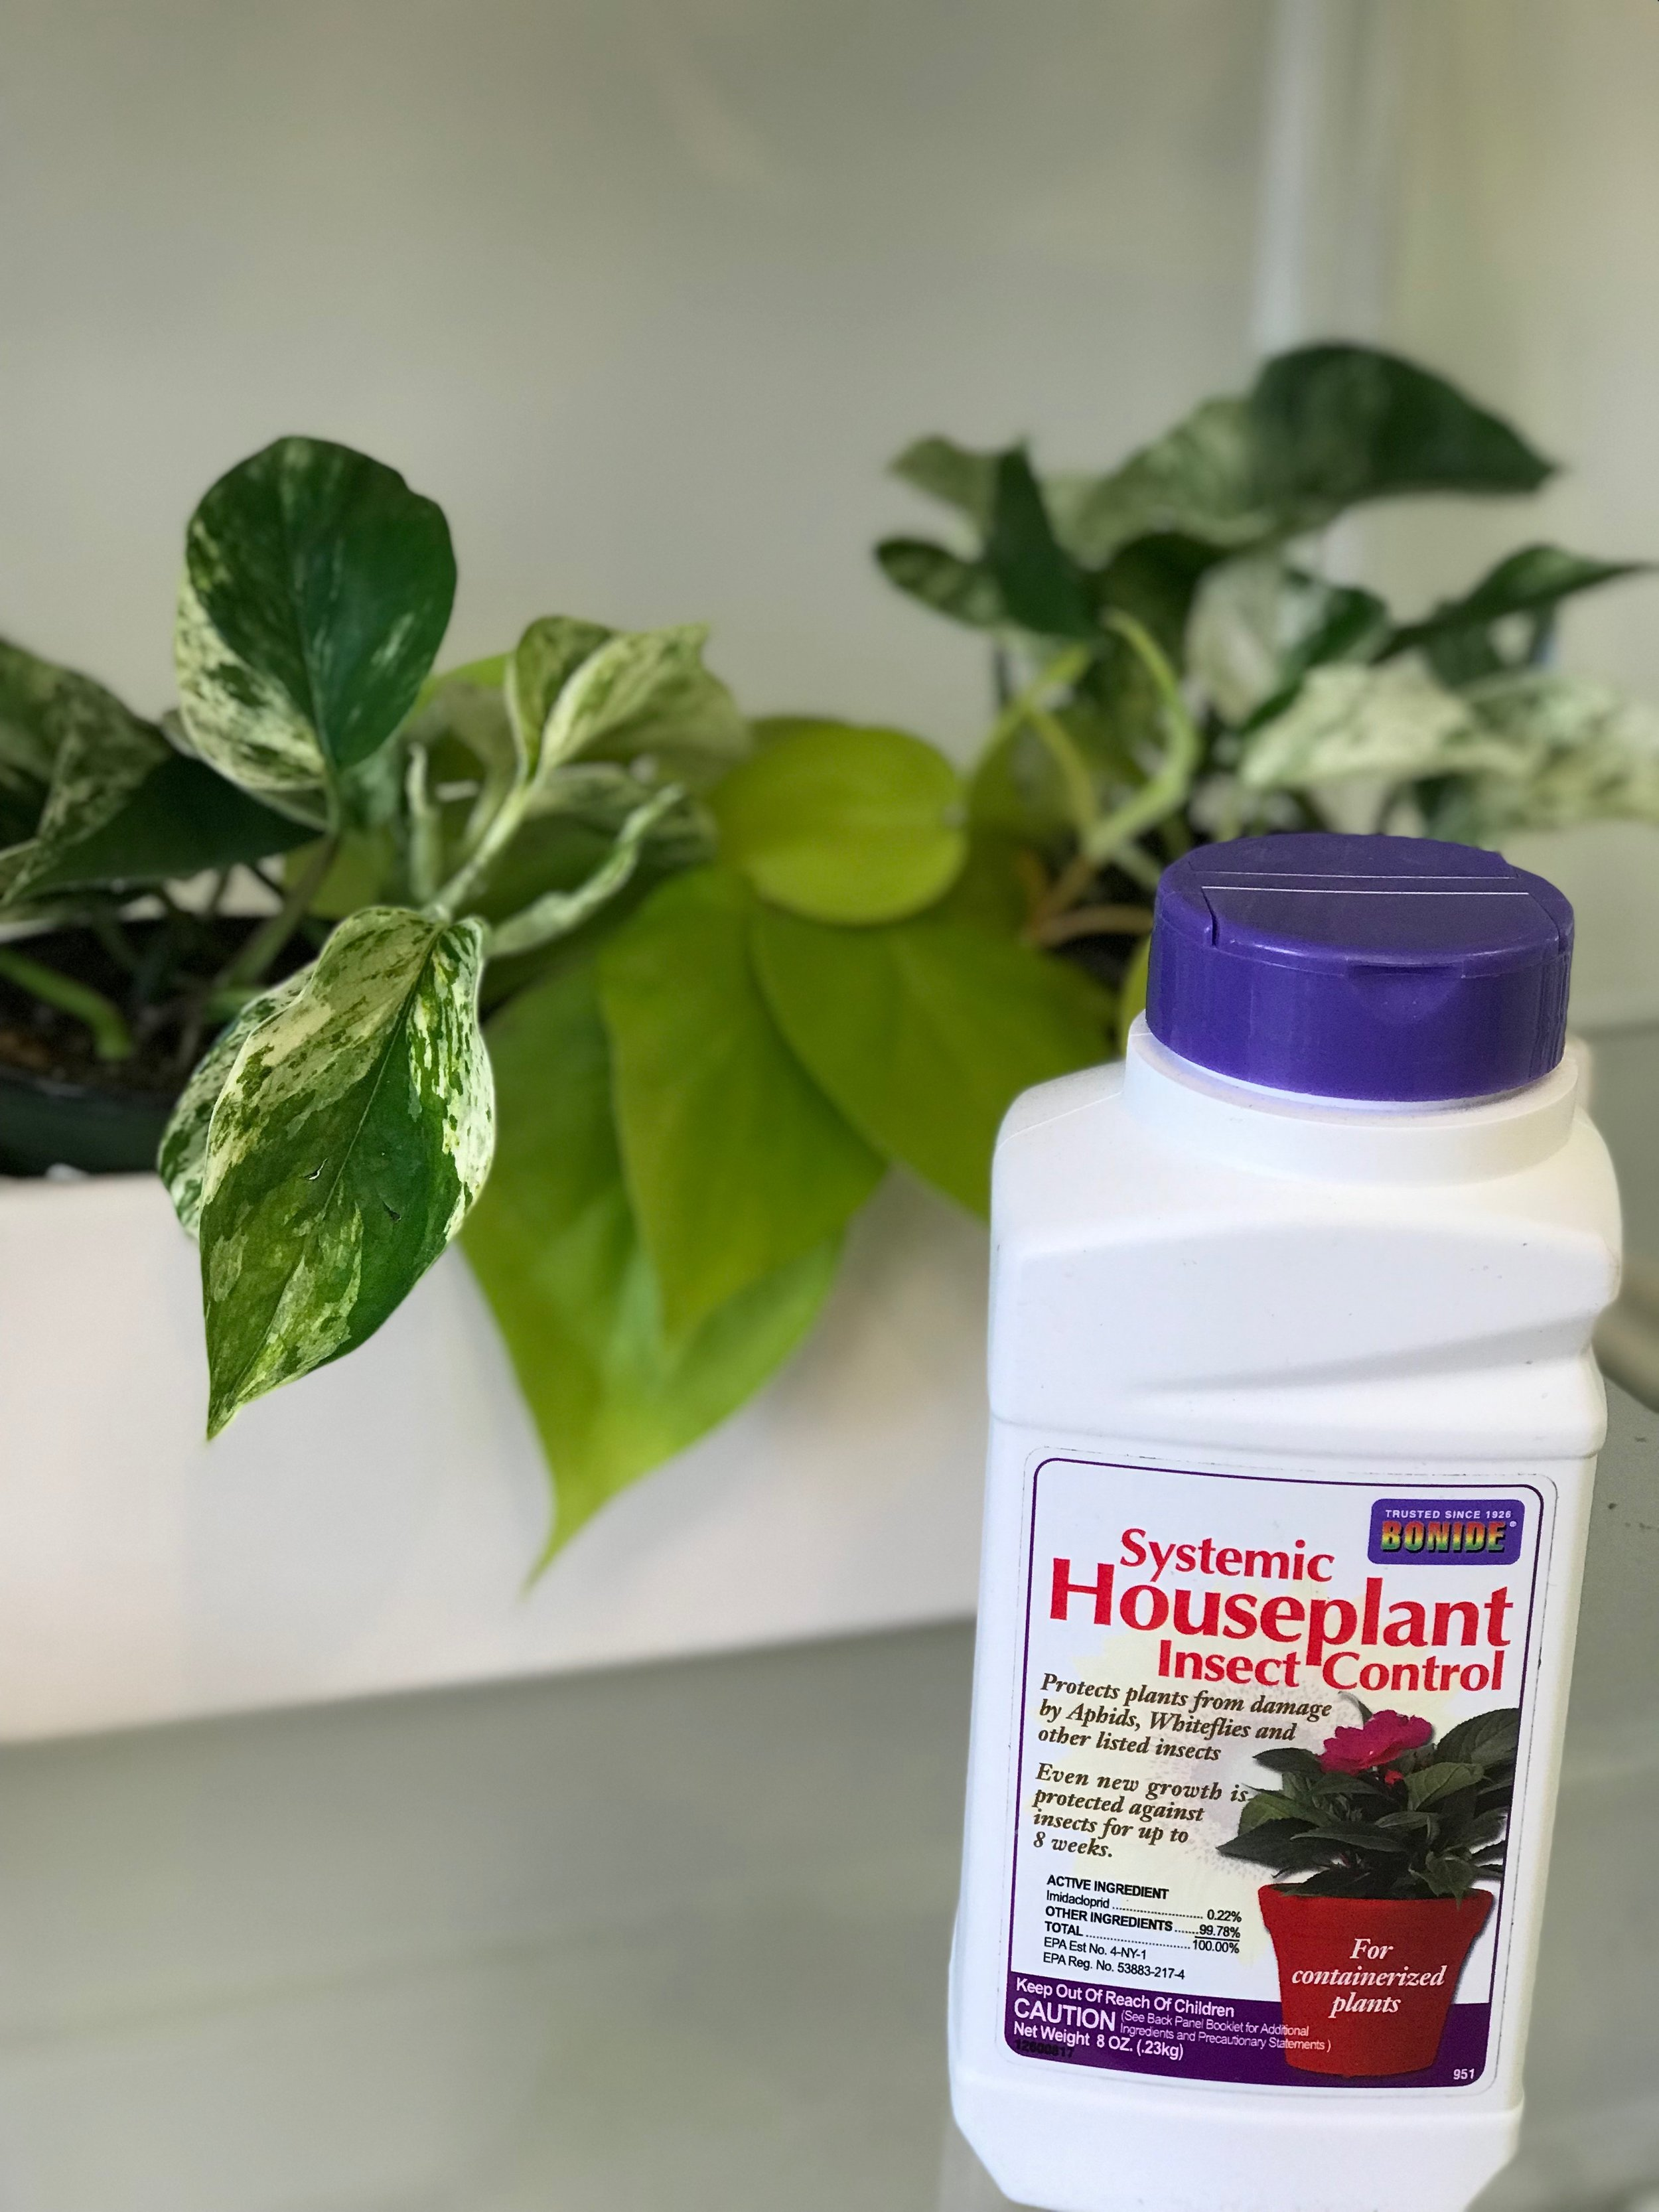 Insecticidal granules - Active ingredient: ImidaclopridProtects plants from several damaging insects for up to 2 months. Sprinkle and work granules into top 1-2 inches of soil and water in. Best applied at time of planting before pest problems occur.